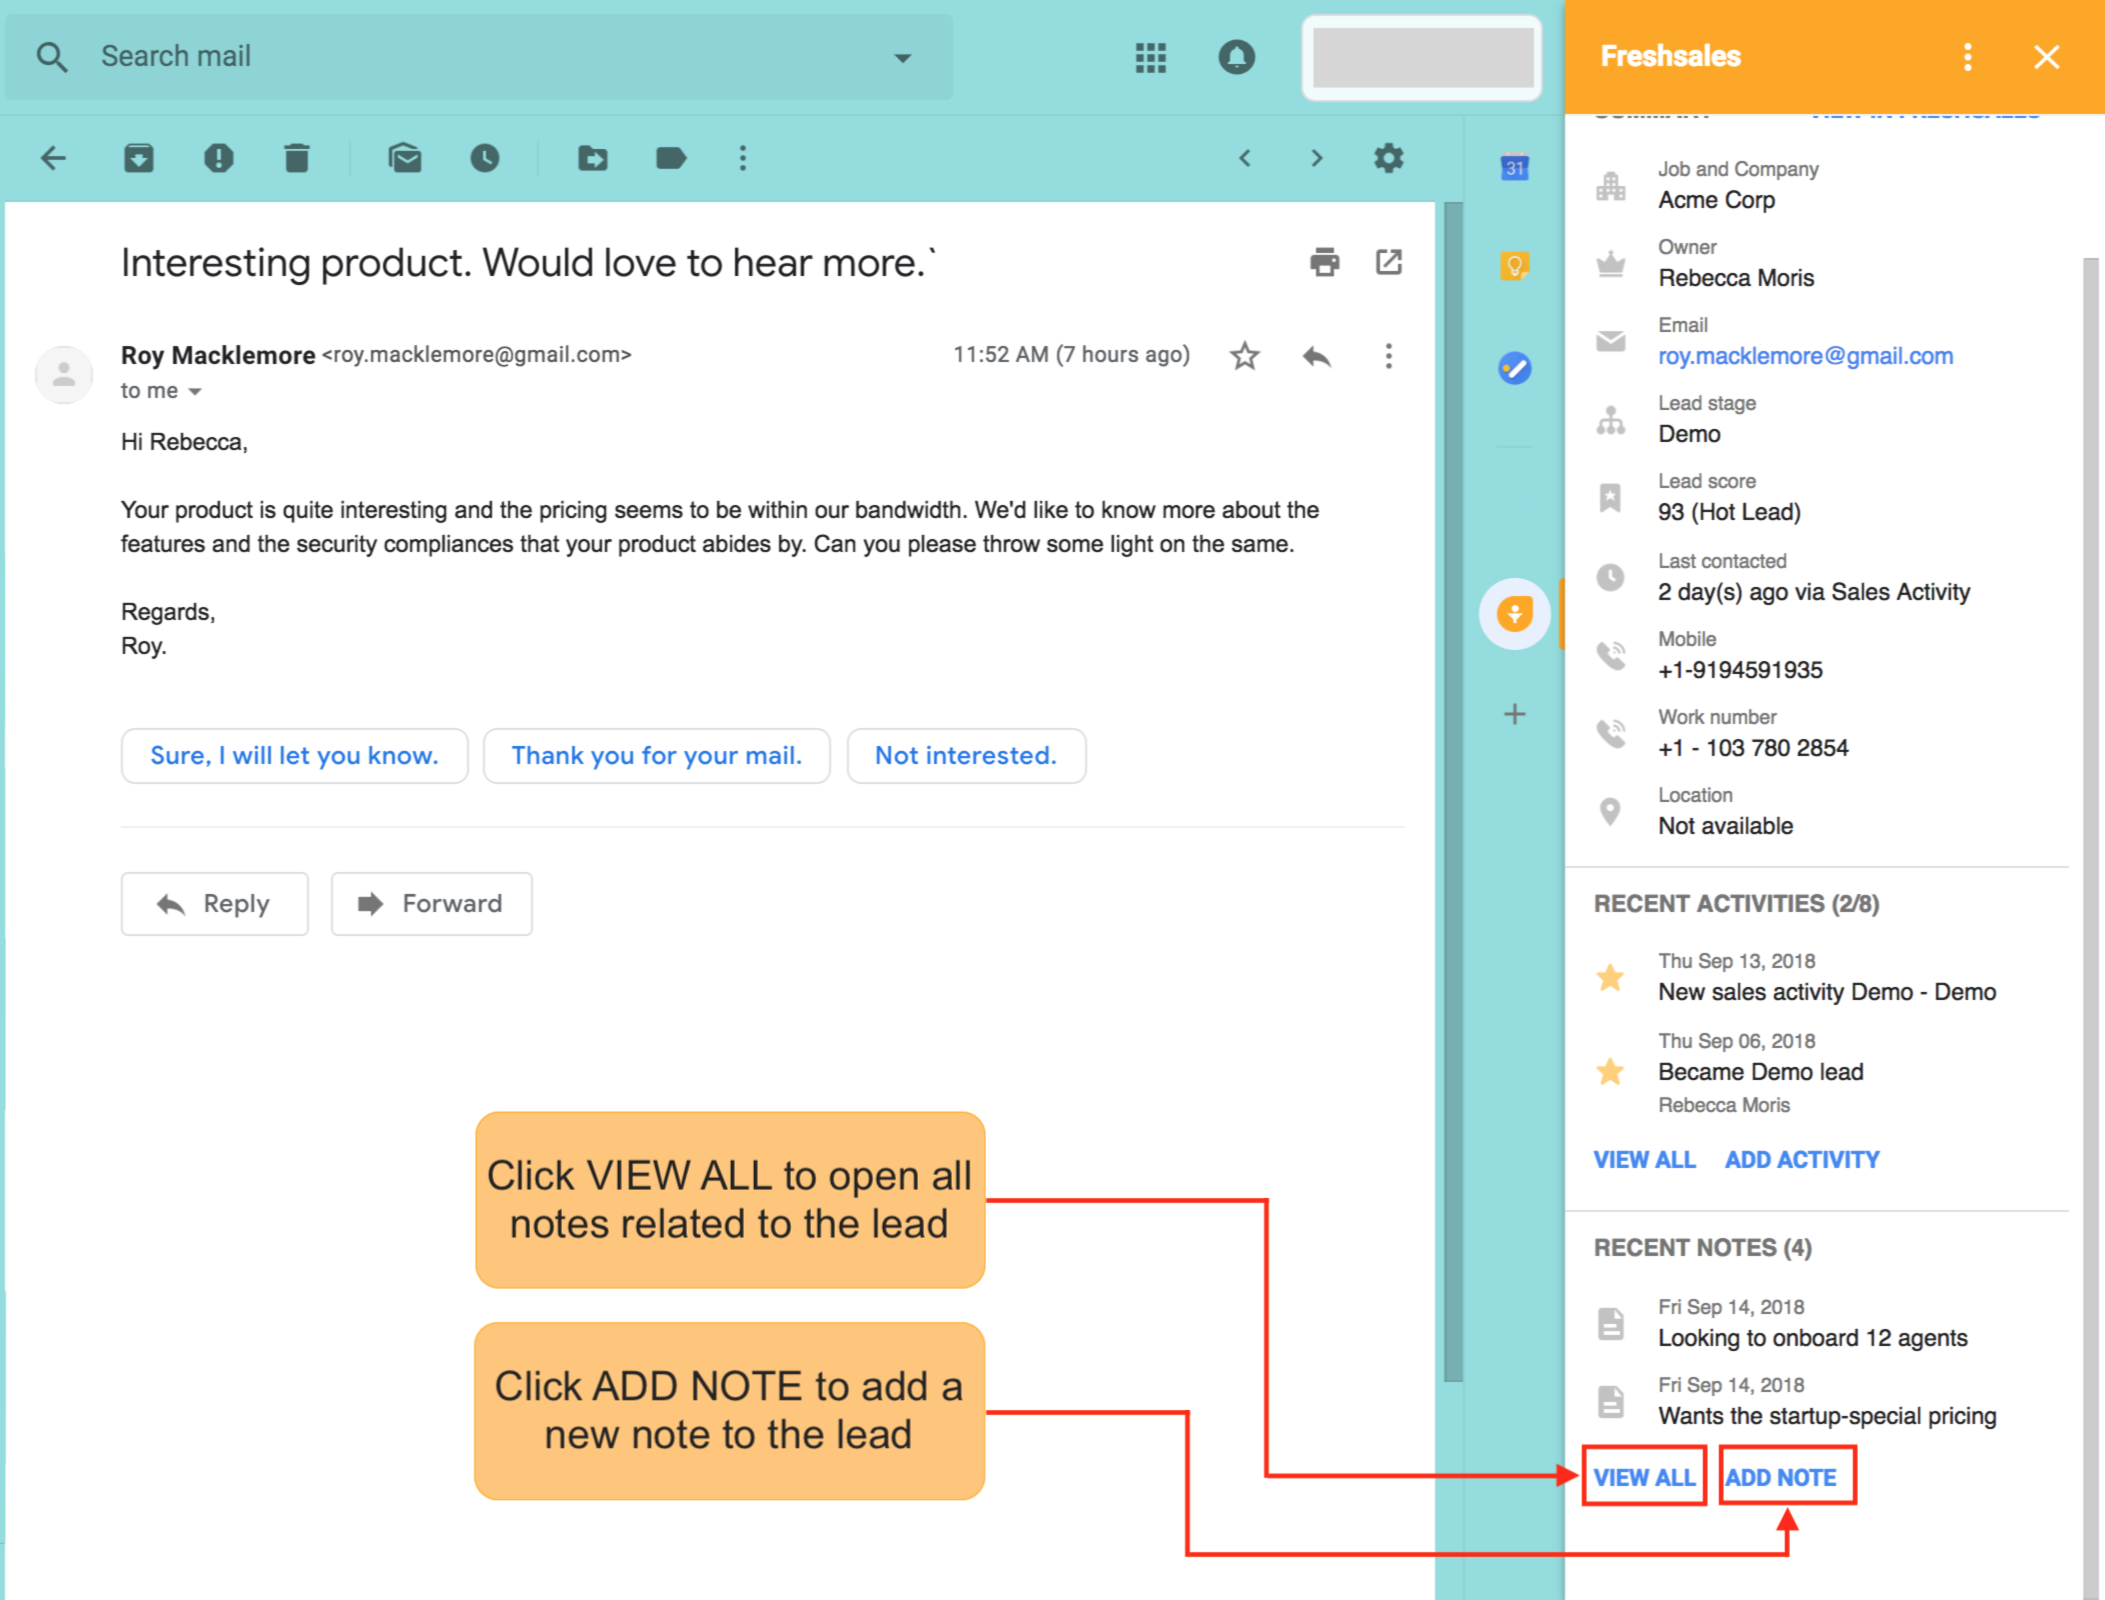 How to use Freshsales' Gmail Add-on? : Freshsales